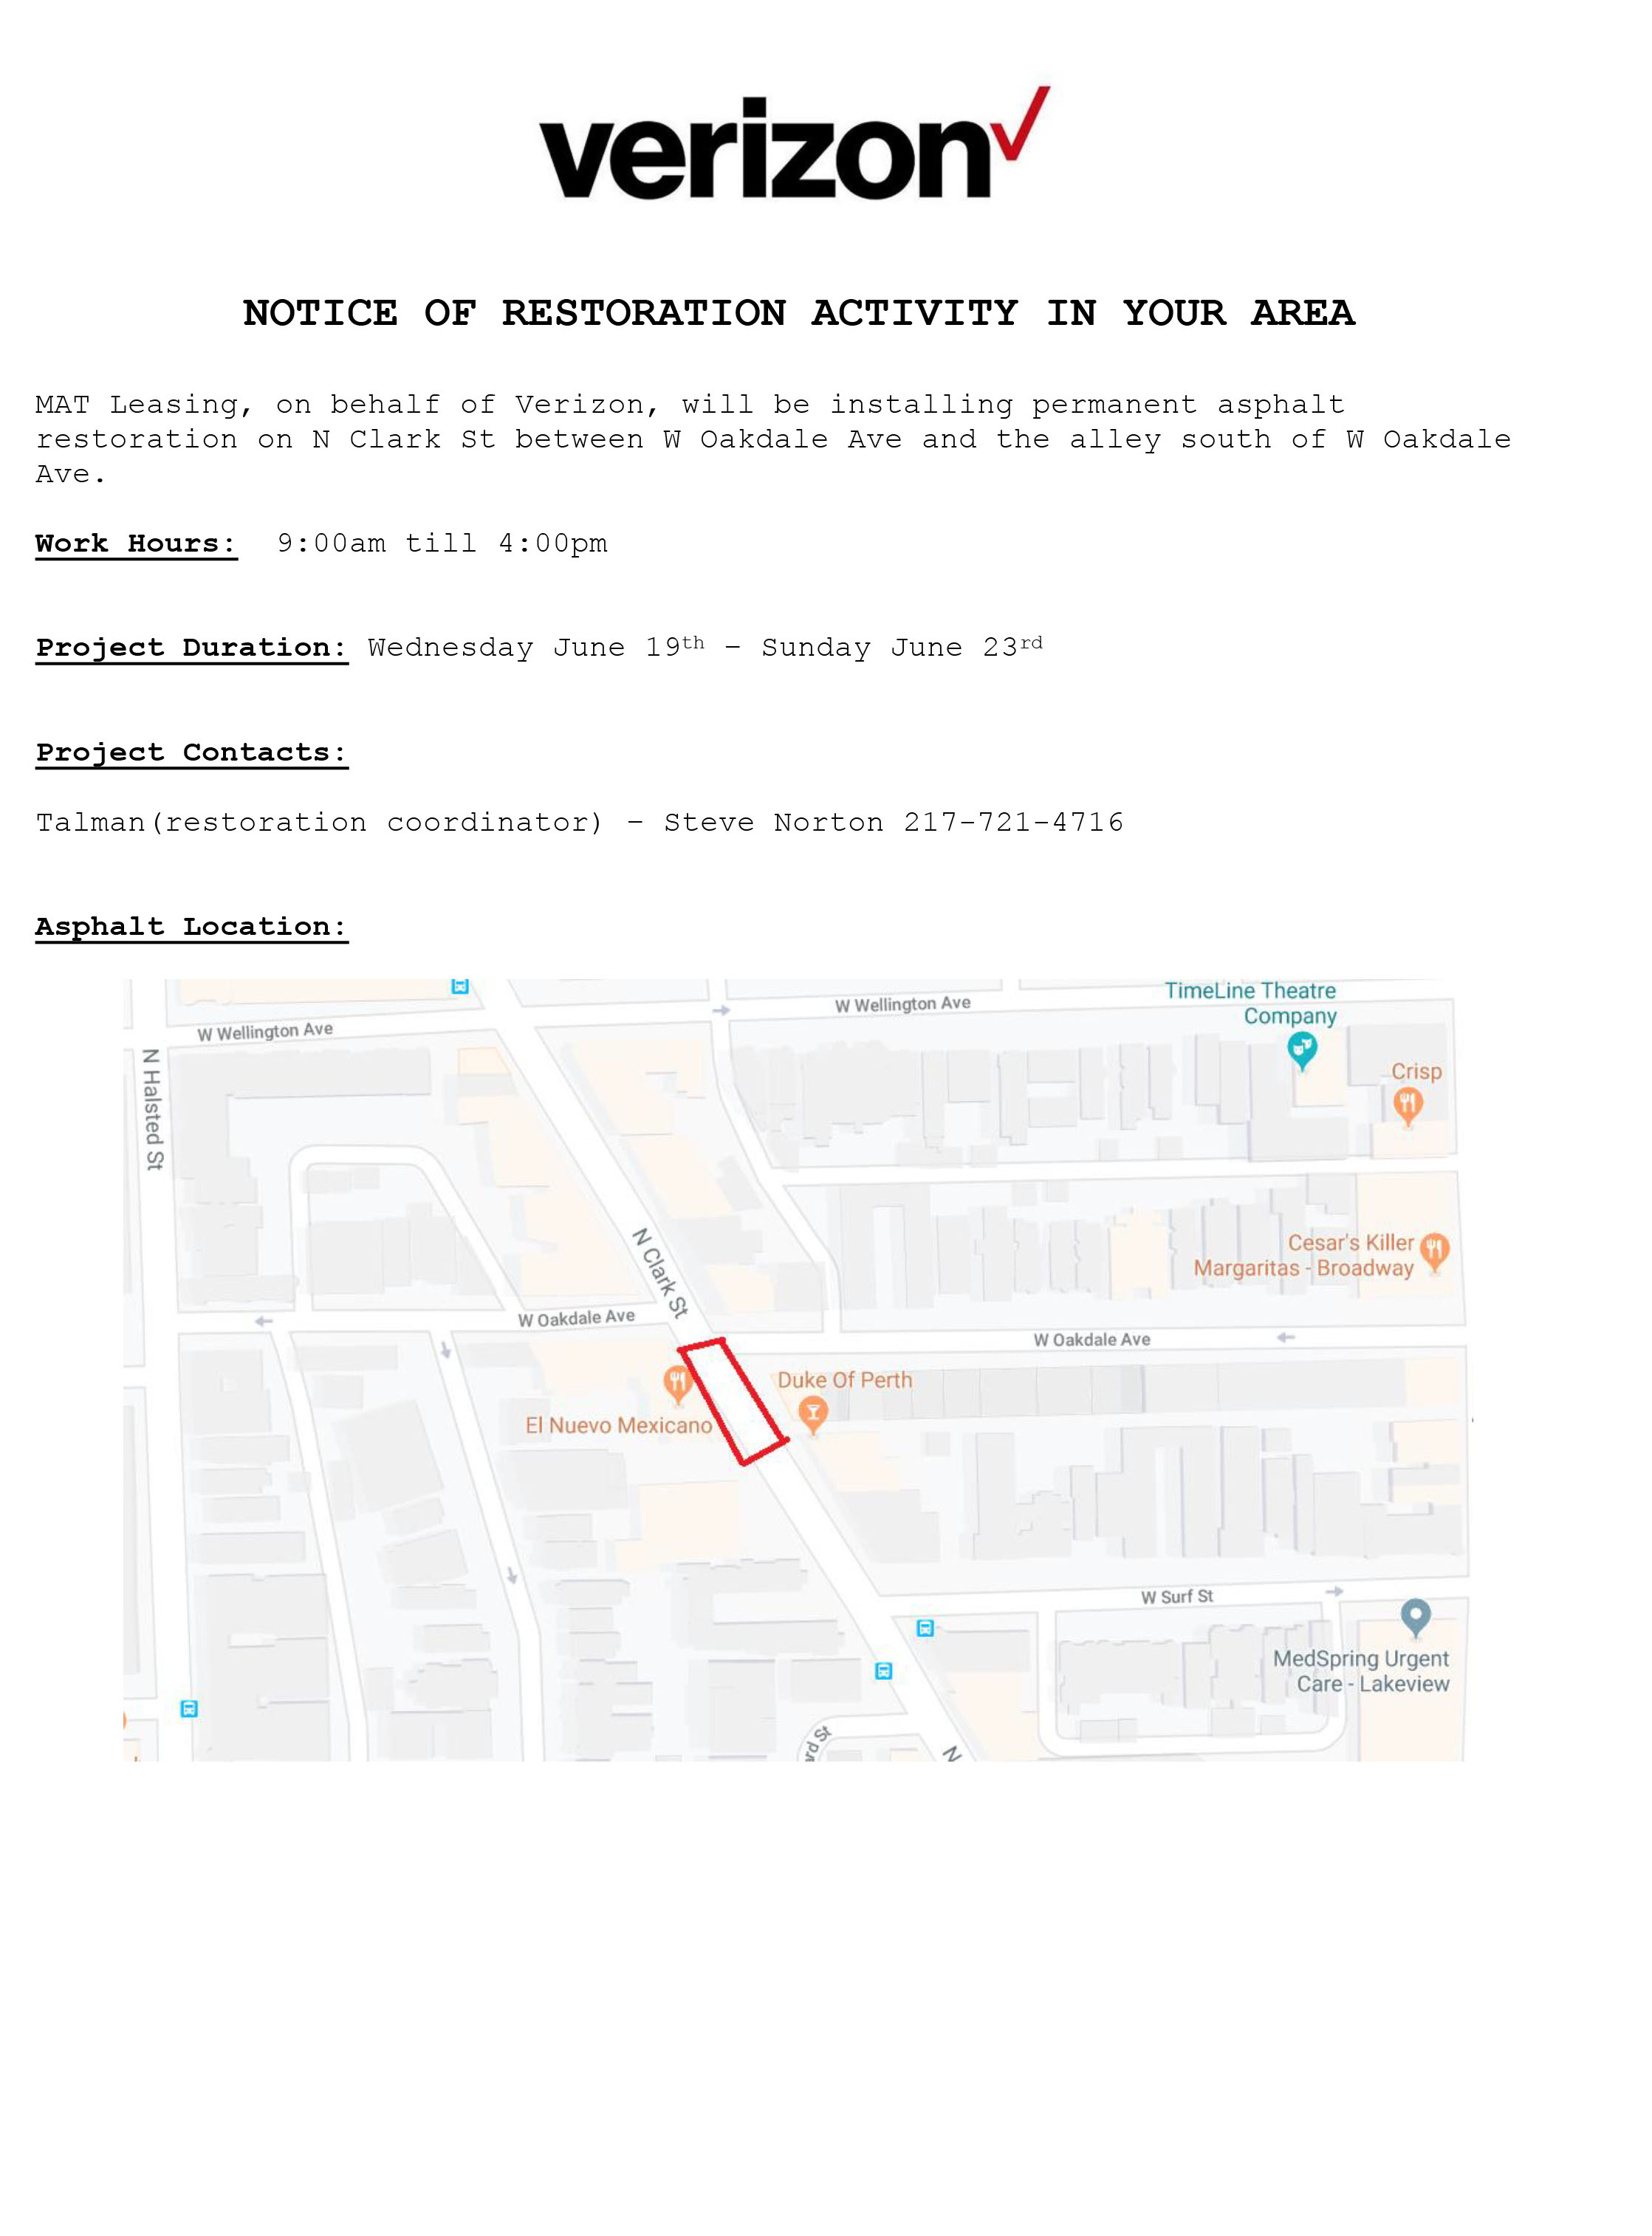 Ward 44 Restoration Notice